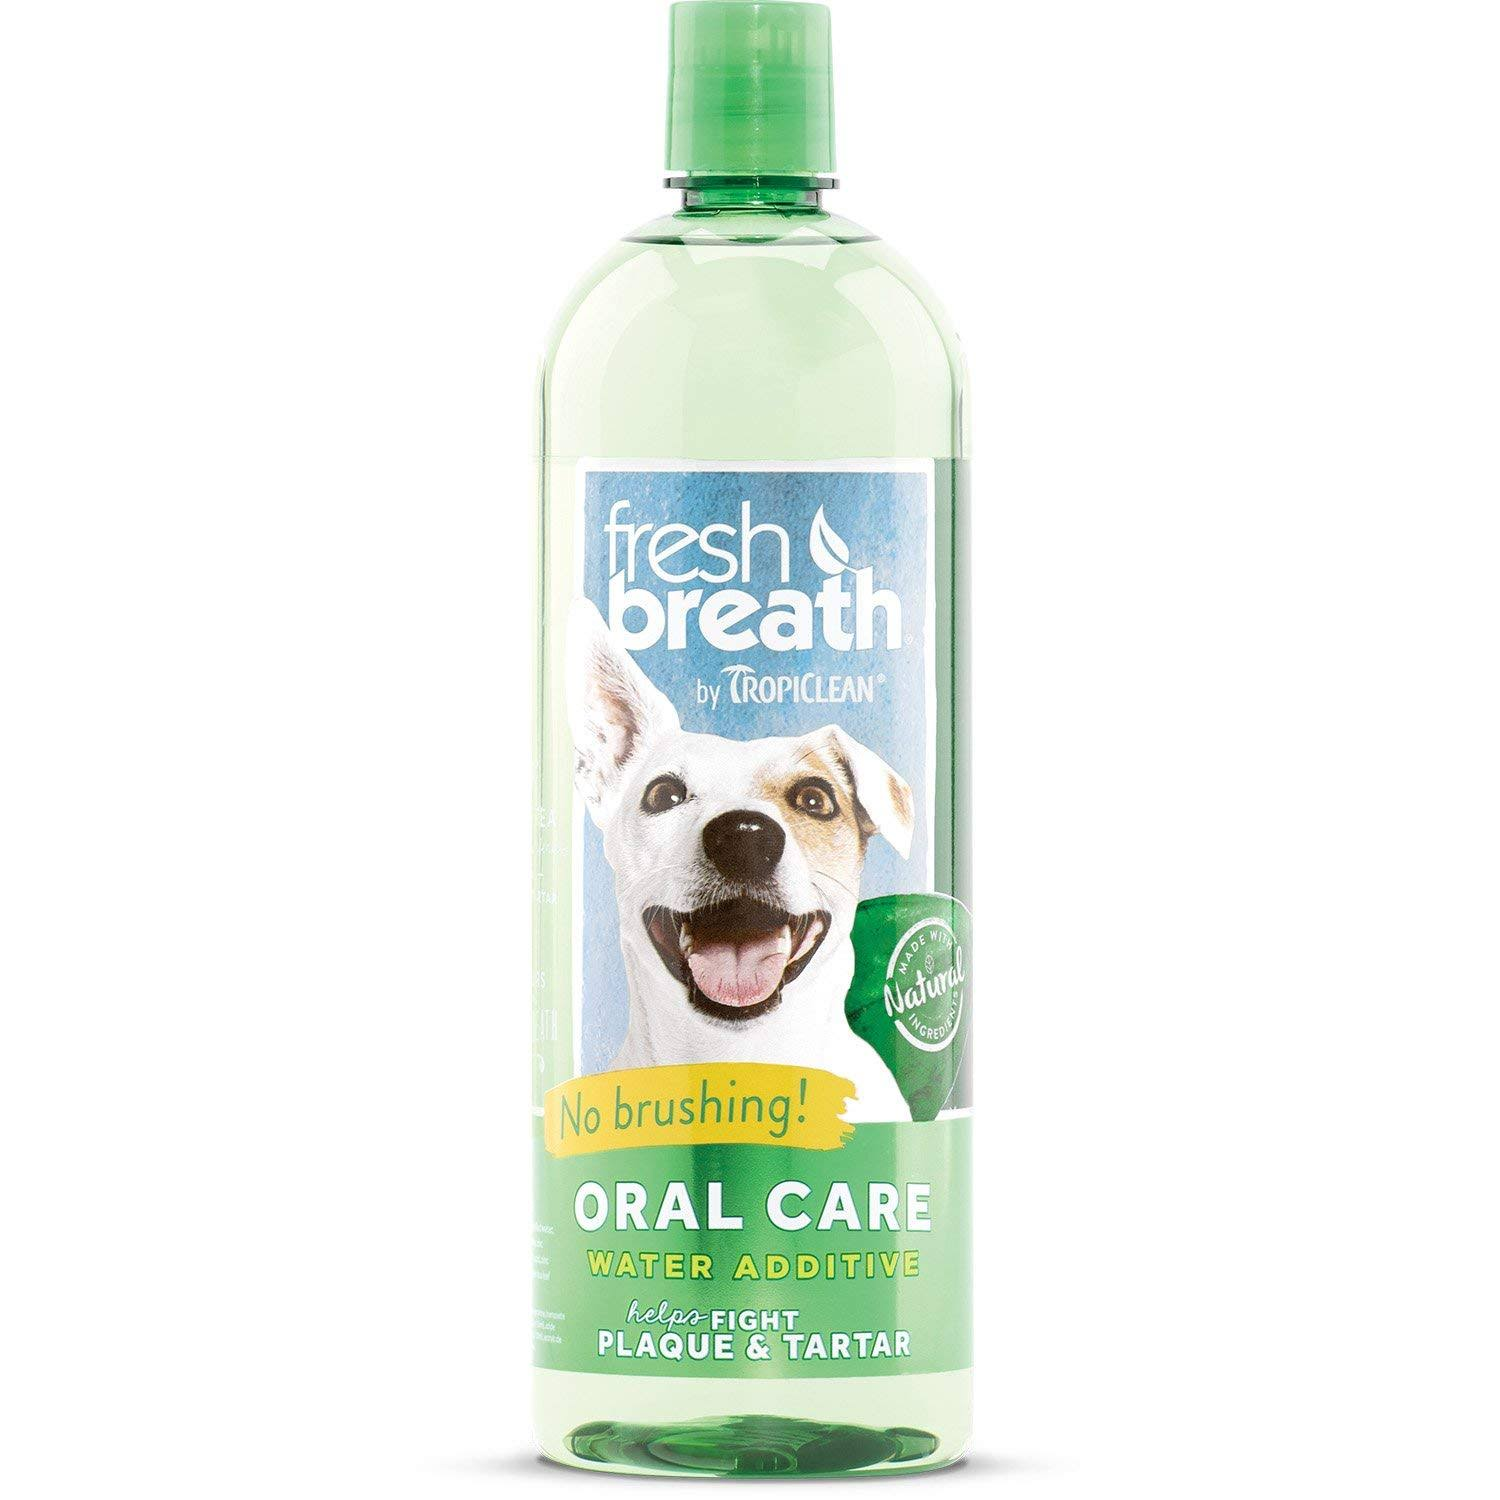 Tropiclean Fresh Breath Plaque Remover Pet Water Additive - 33.8oz